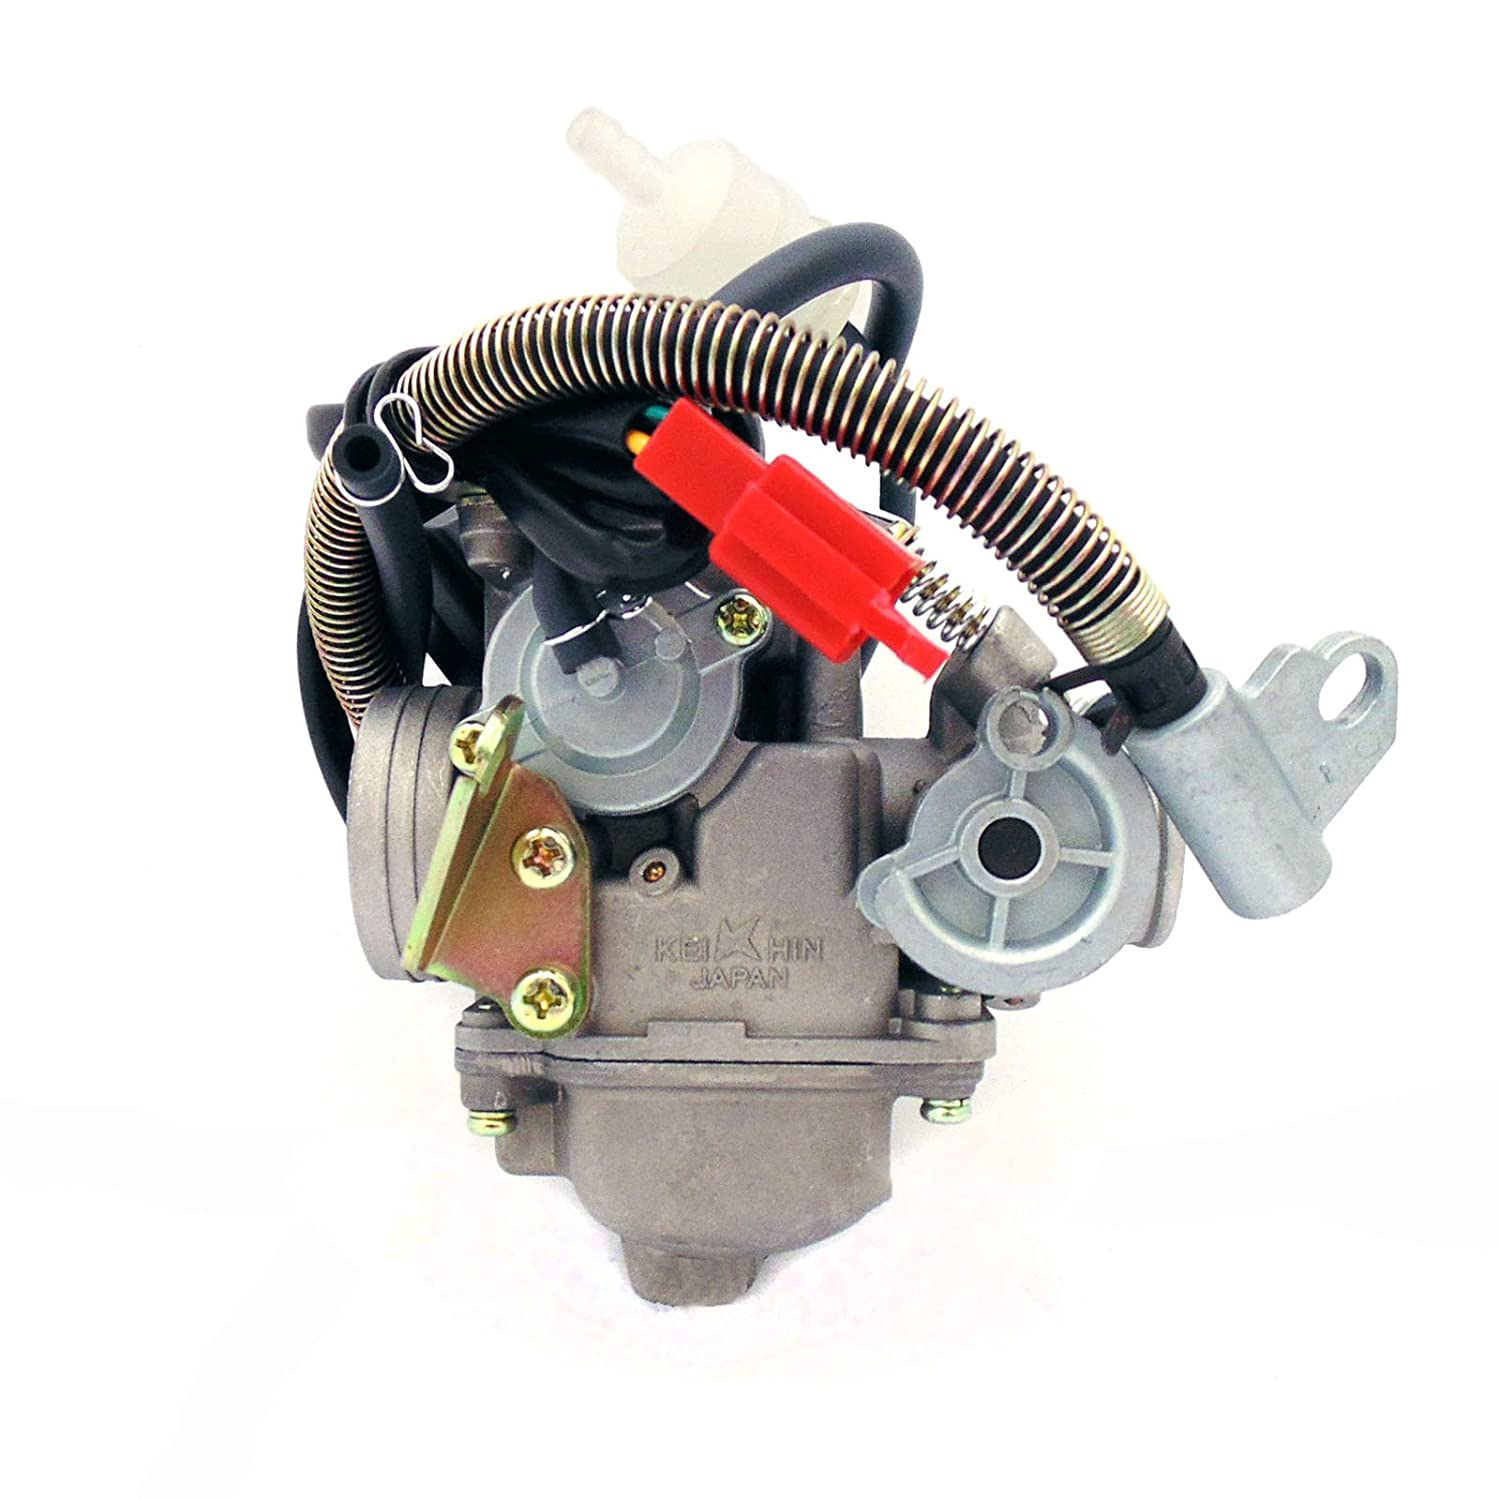 Carburetor Assy 150cc 125cc 4 Stroke Electric Choke Engine Diagram For Honda Metropolitan Moped Motorcycle Scooter Automotive